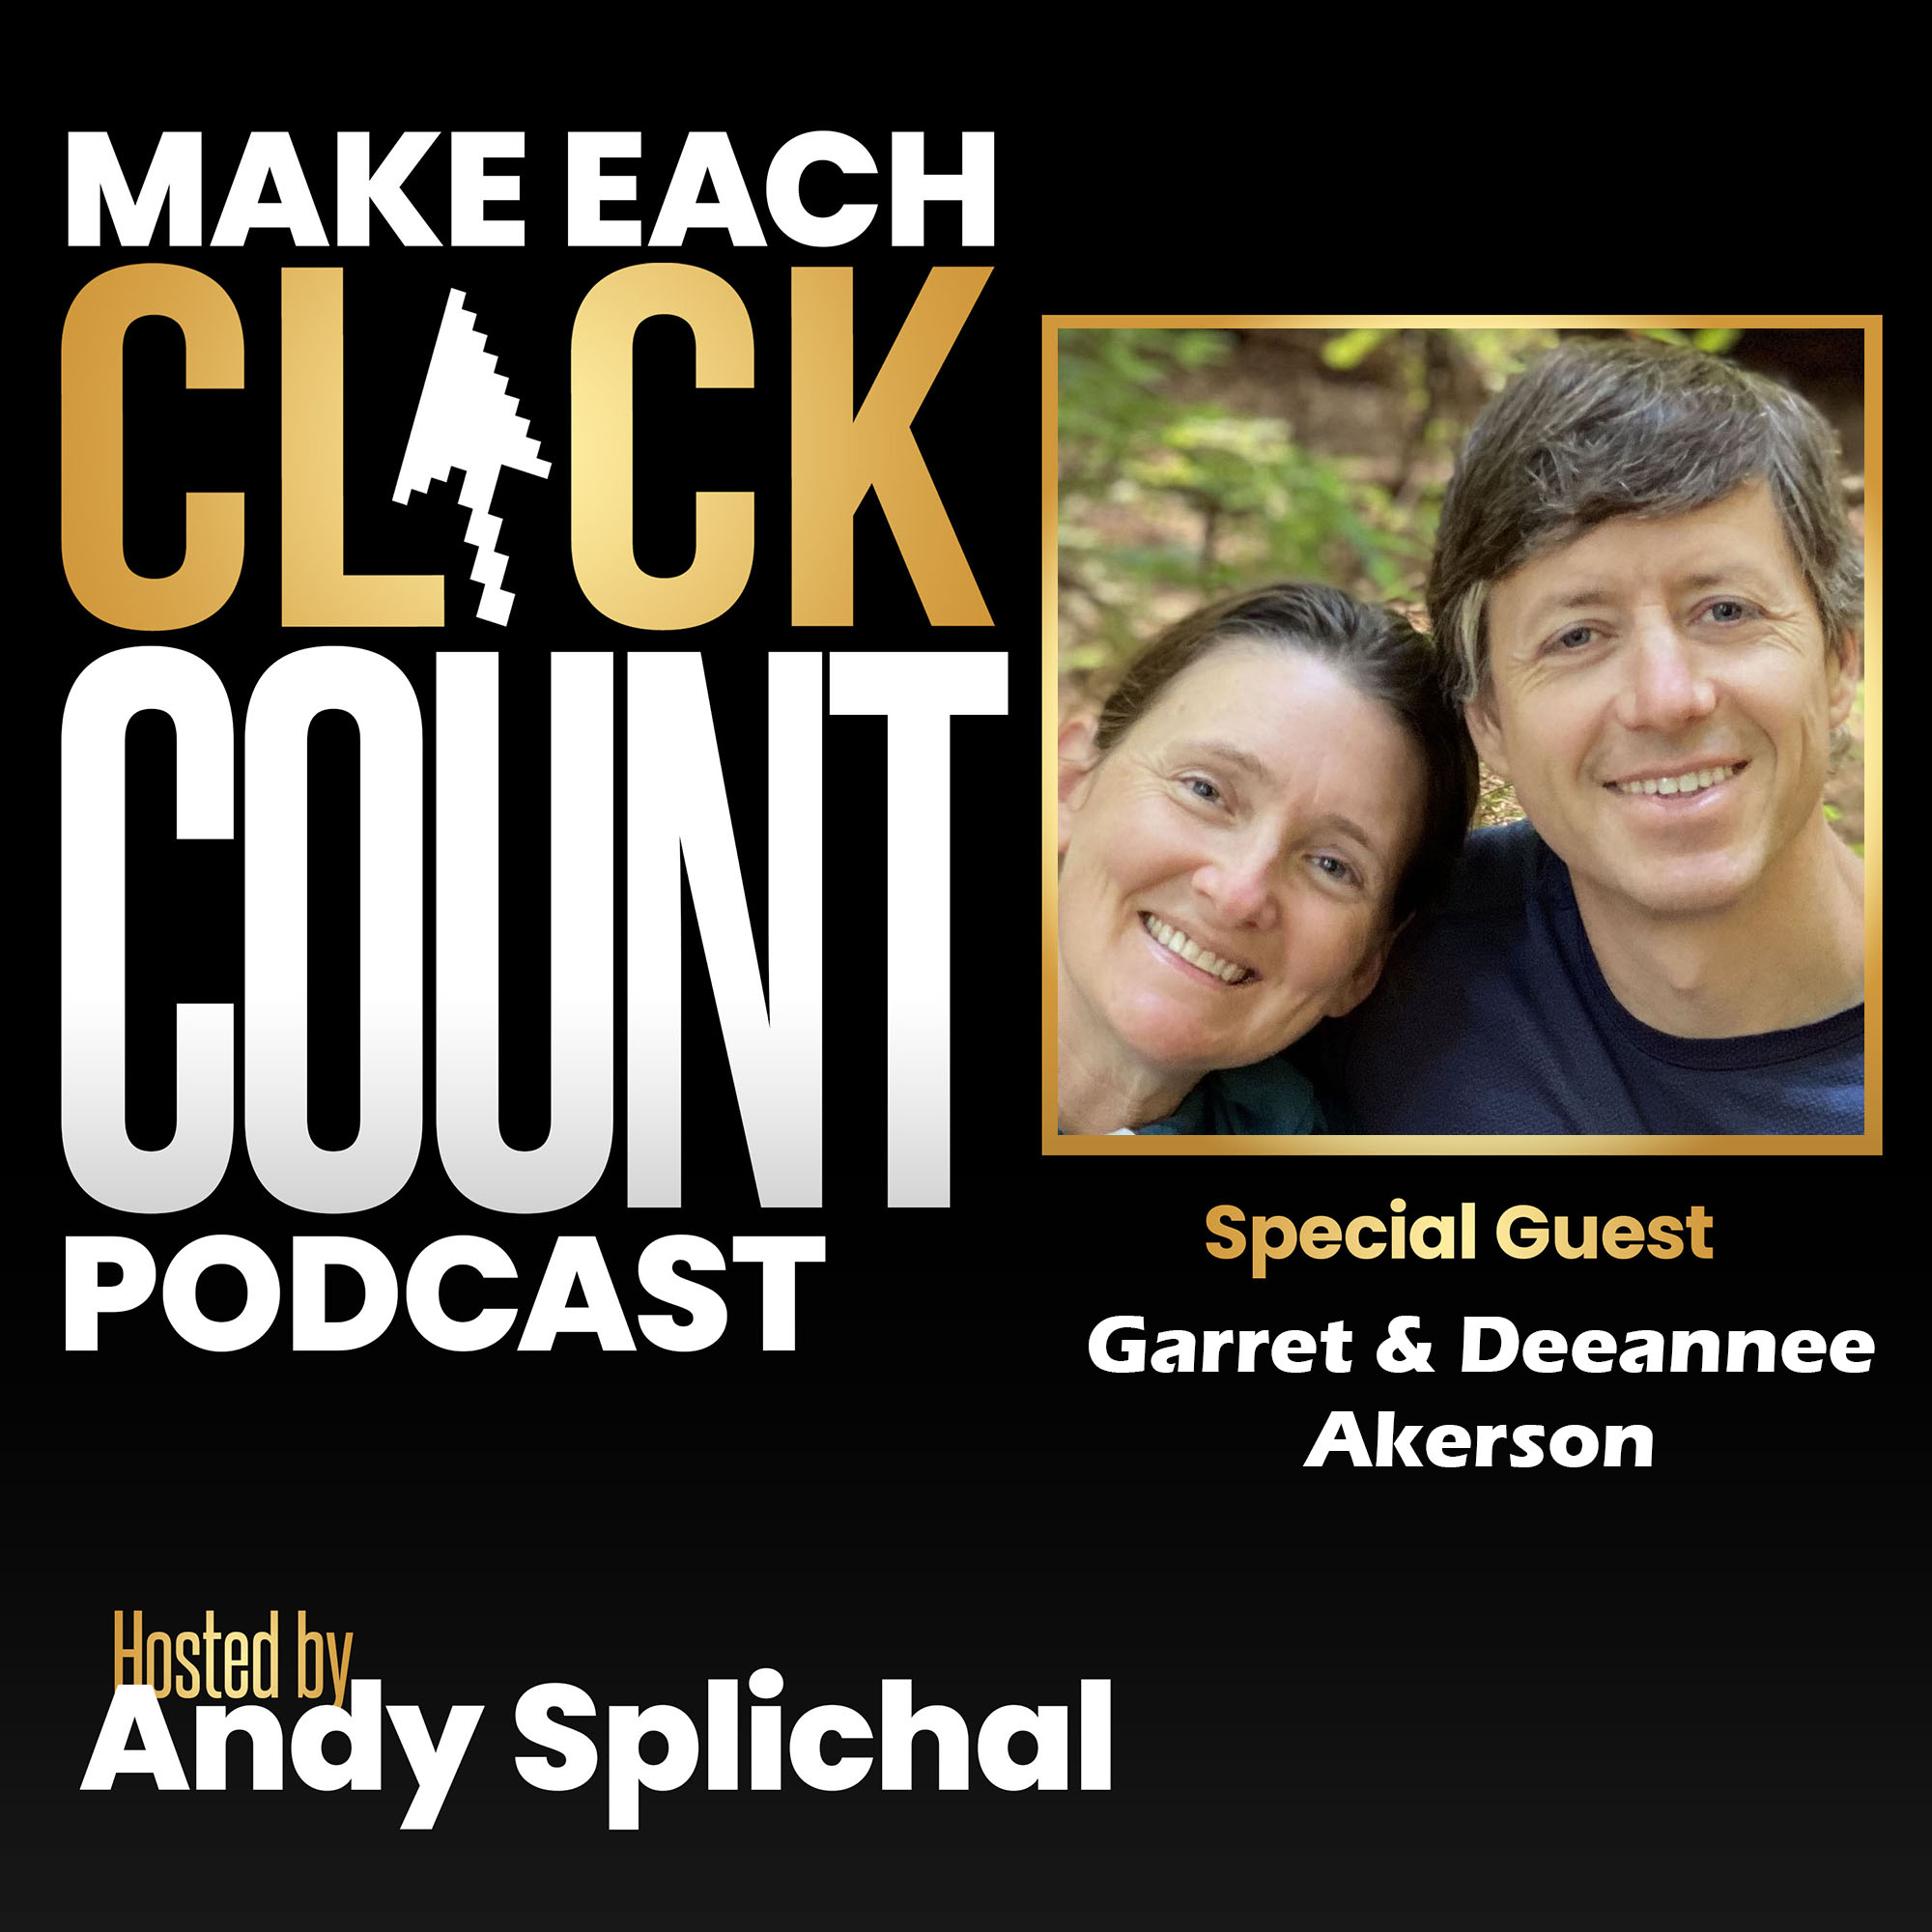 Artwork for podcast Make Each Click Count Hosted By Andy Splichal